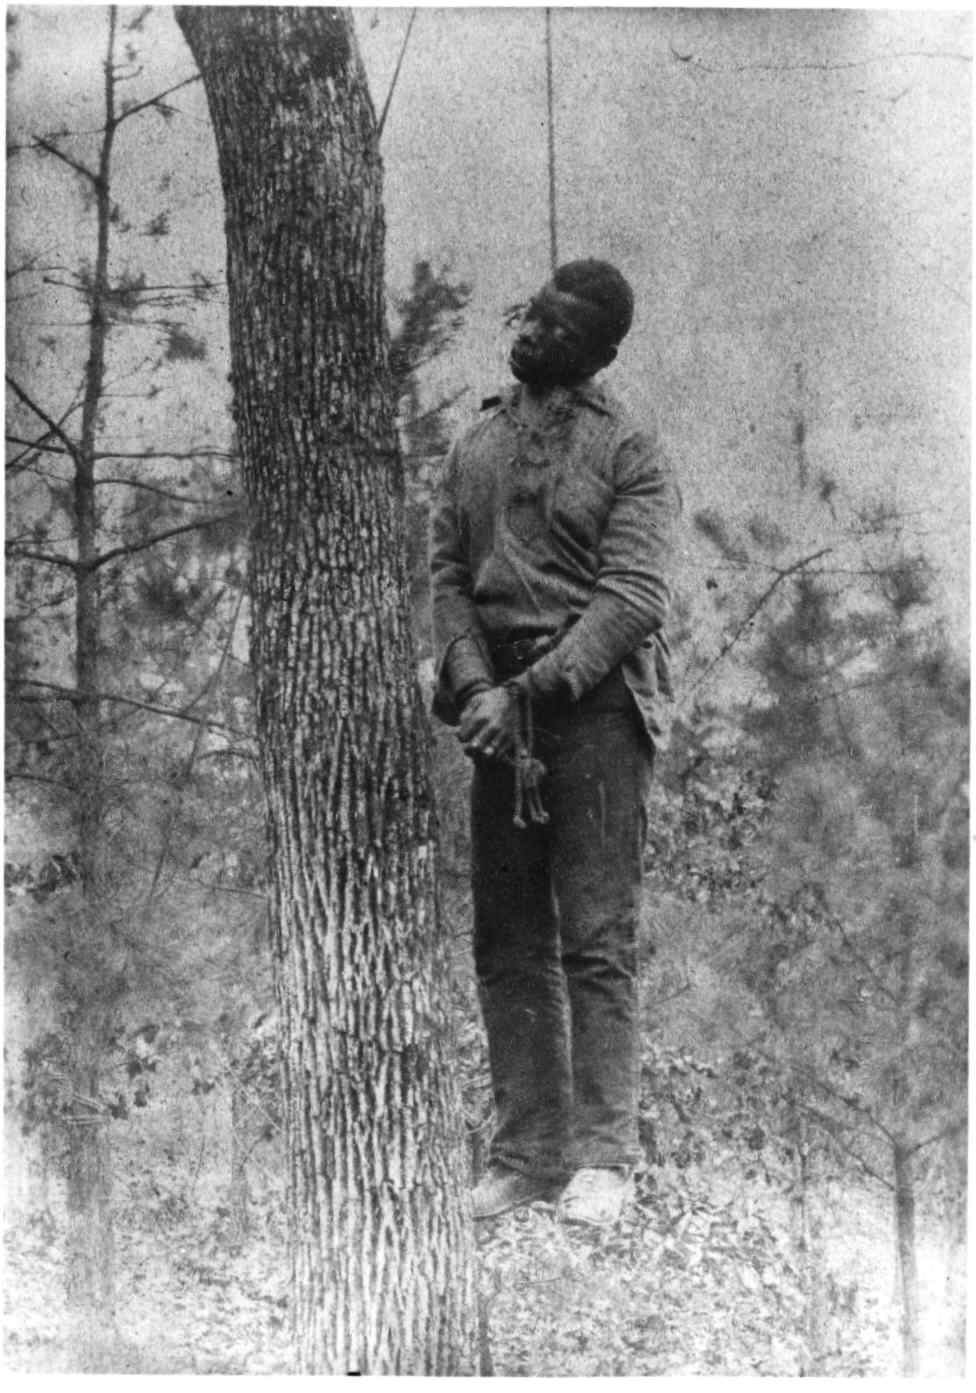 http://upload.wikimedia.org/wikipedia/commons/4/4d/Lynching-1889.jpg